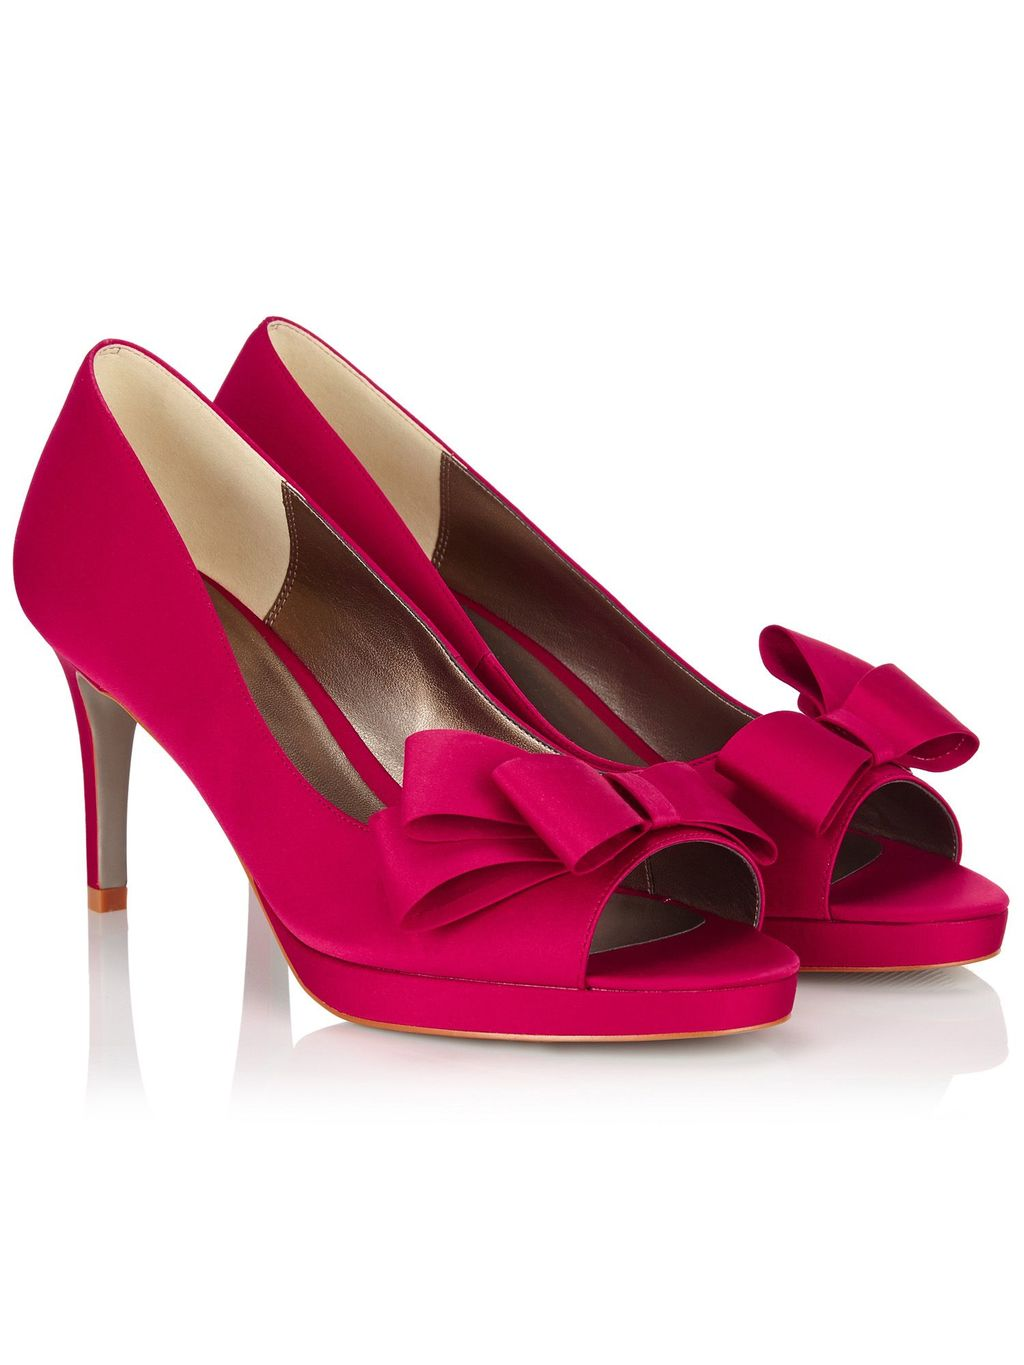 Bow Trim Platform Shoe, Pink - predominant colour: hot pink; occasions: evening, occasion; material: suede; heel height: high; heel: stiletto; toe: open toe/peeptoe; style: courts; finish: plain; pattern: plain; embellishment: bow; shoe detail: platform; season: s/s 2016; wardrobe: event